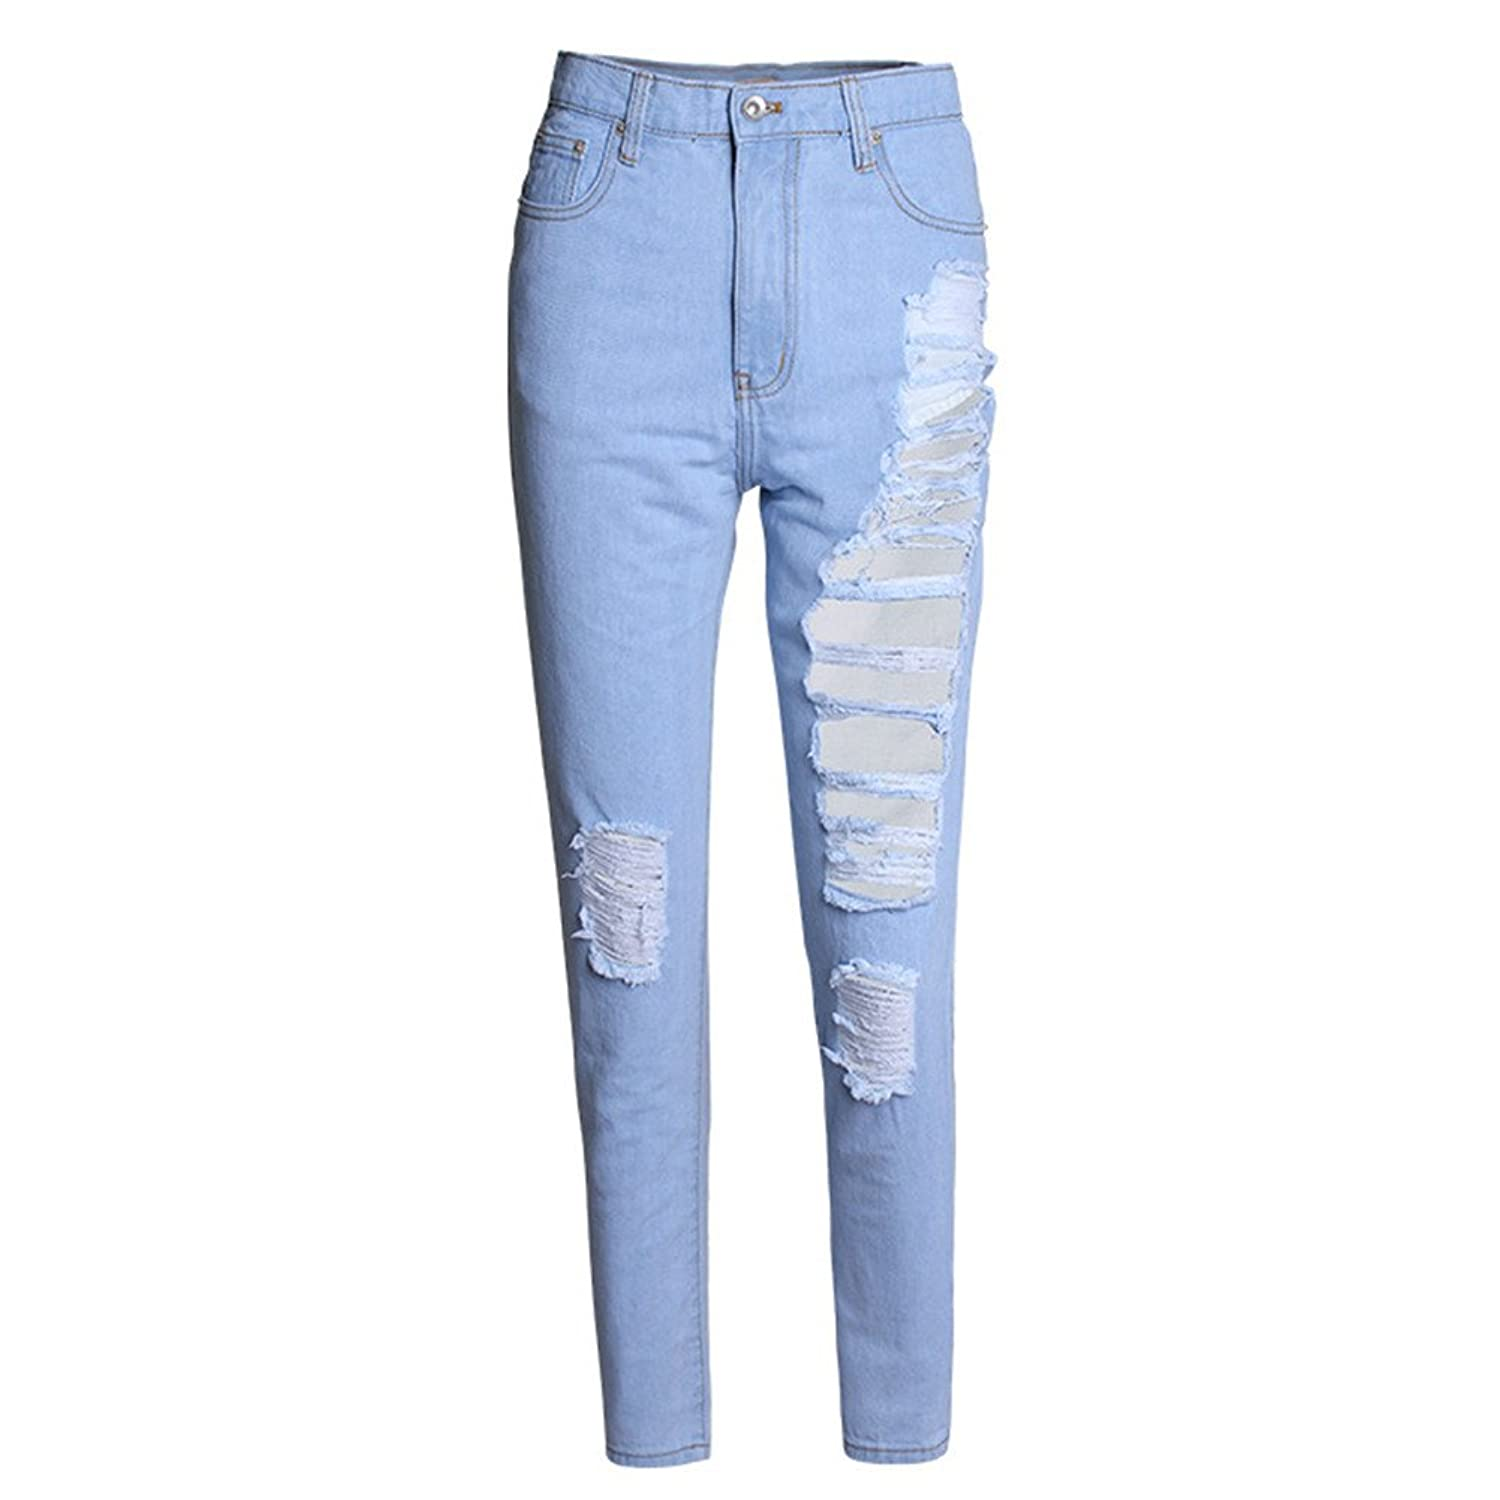 Womens Fashion Cool Destroyed Hole Jeans Ripped Washed Pants Denim Trousers